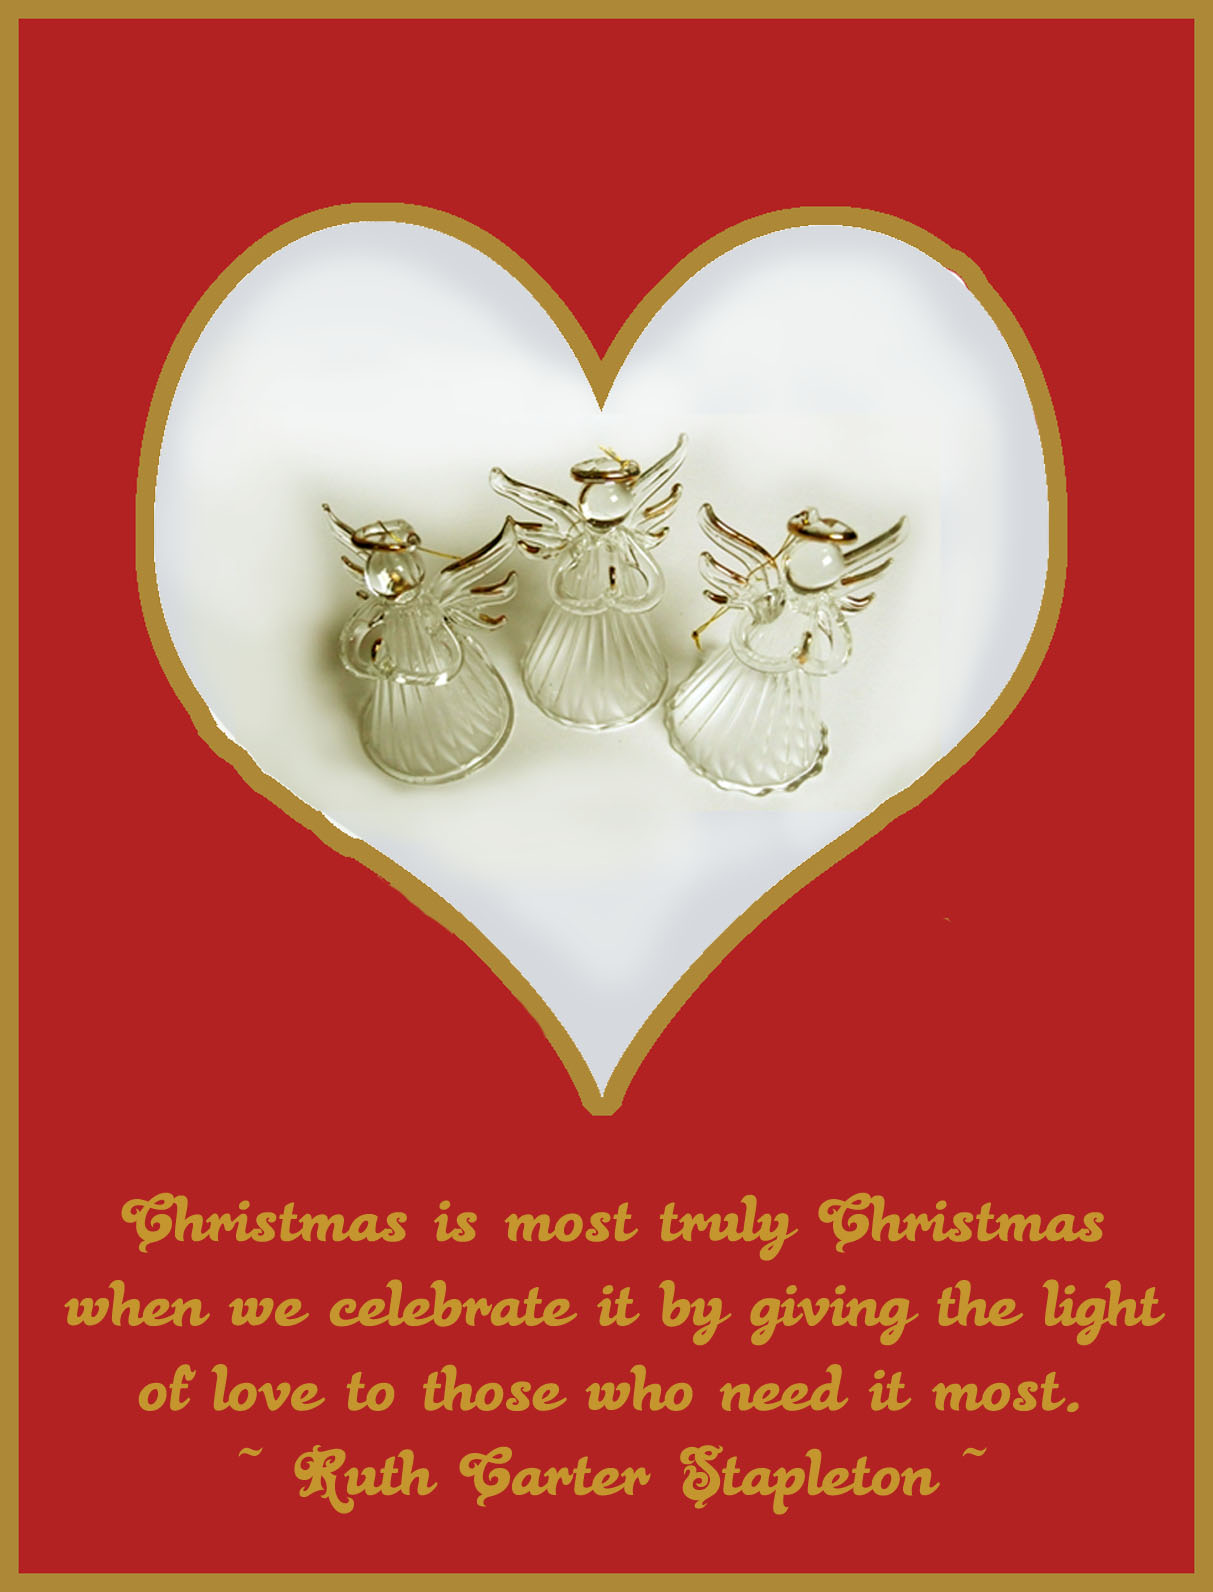 Printable Christmas card with glass angels in a heart and a quote of love.